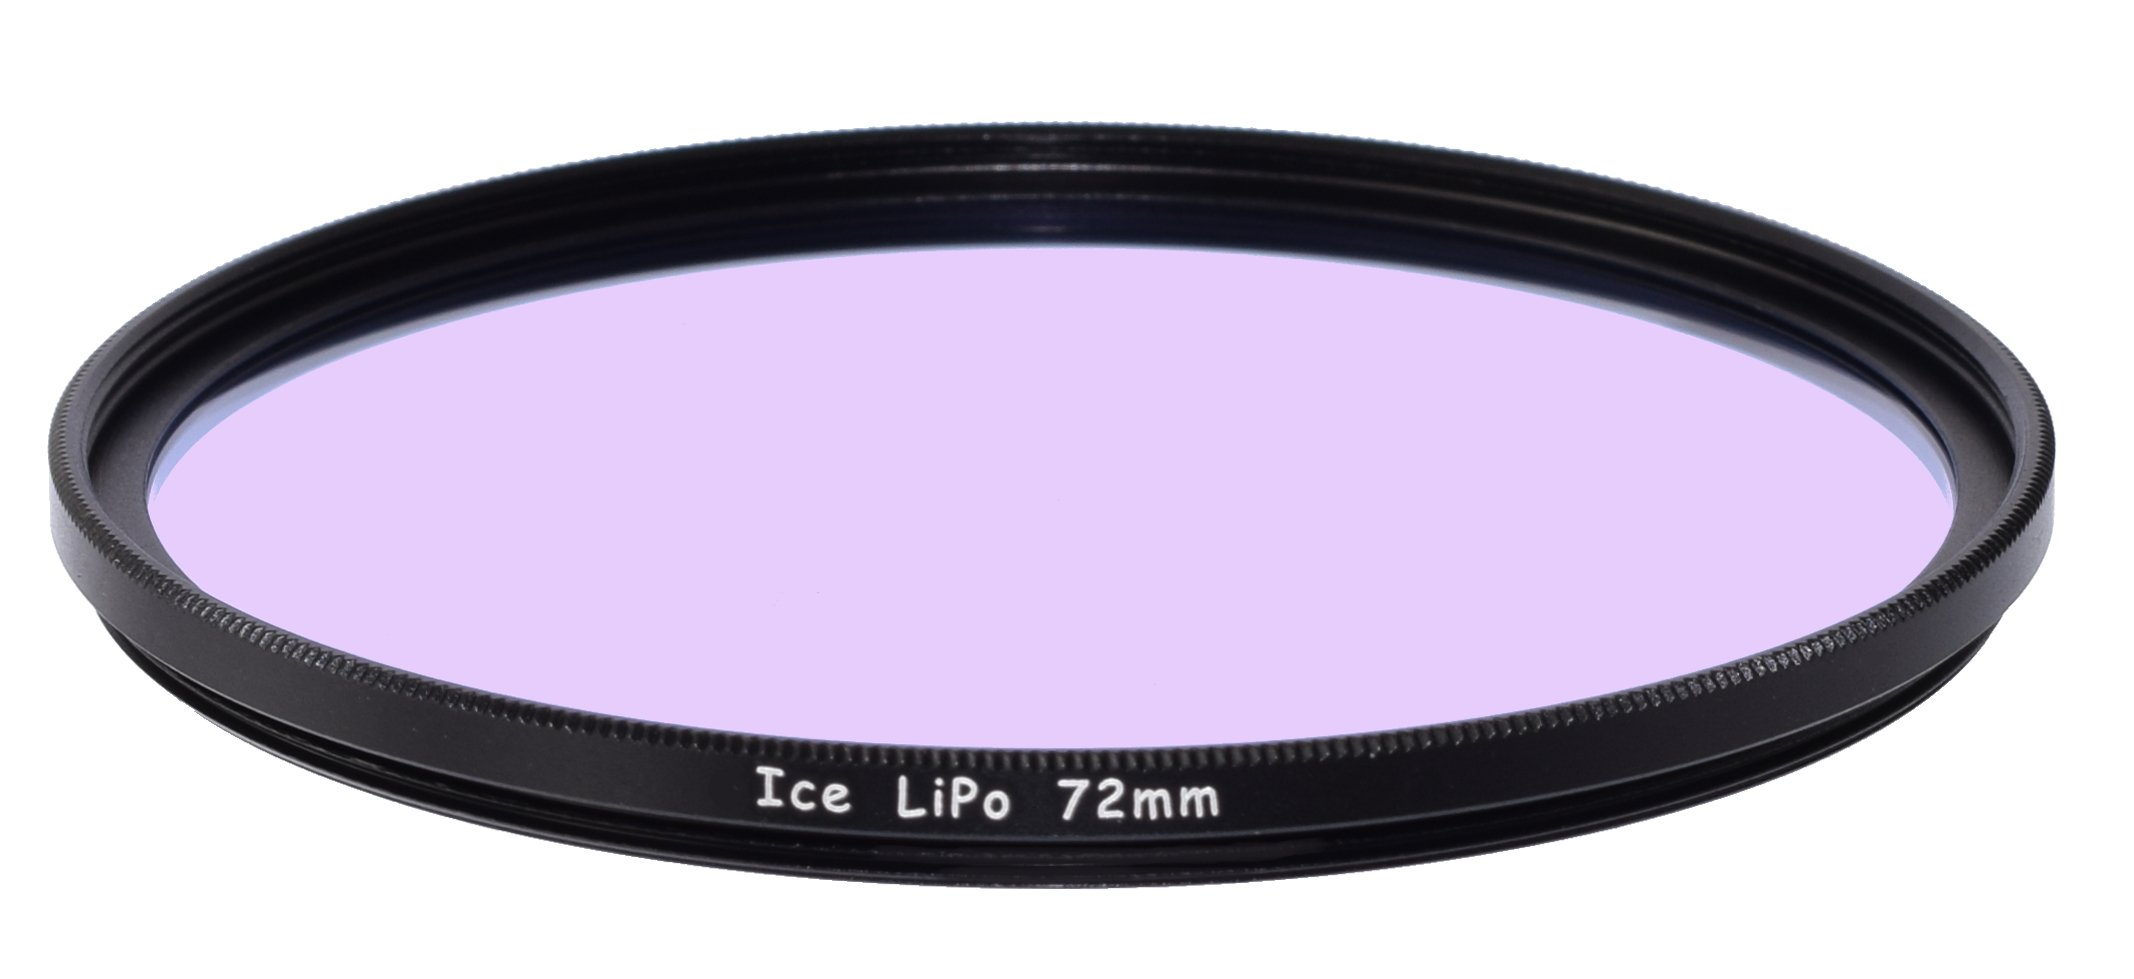 ICE 72mm LiPo Filter Light Pollution Reduction for Night Sky/Star 72 by Ice